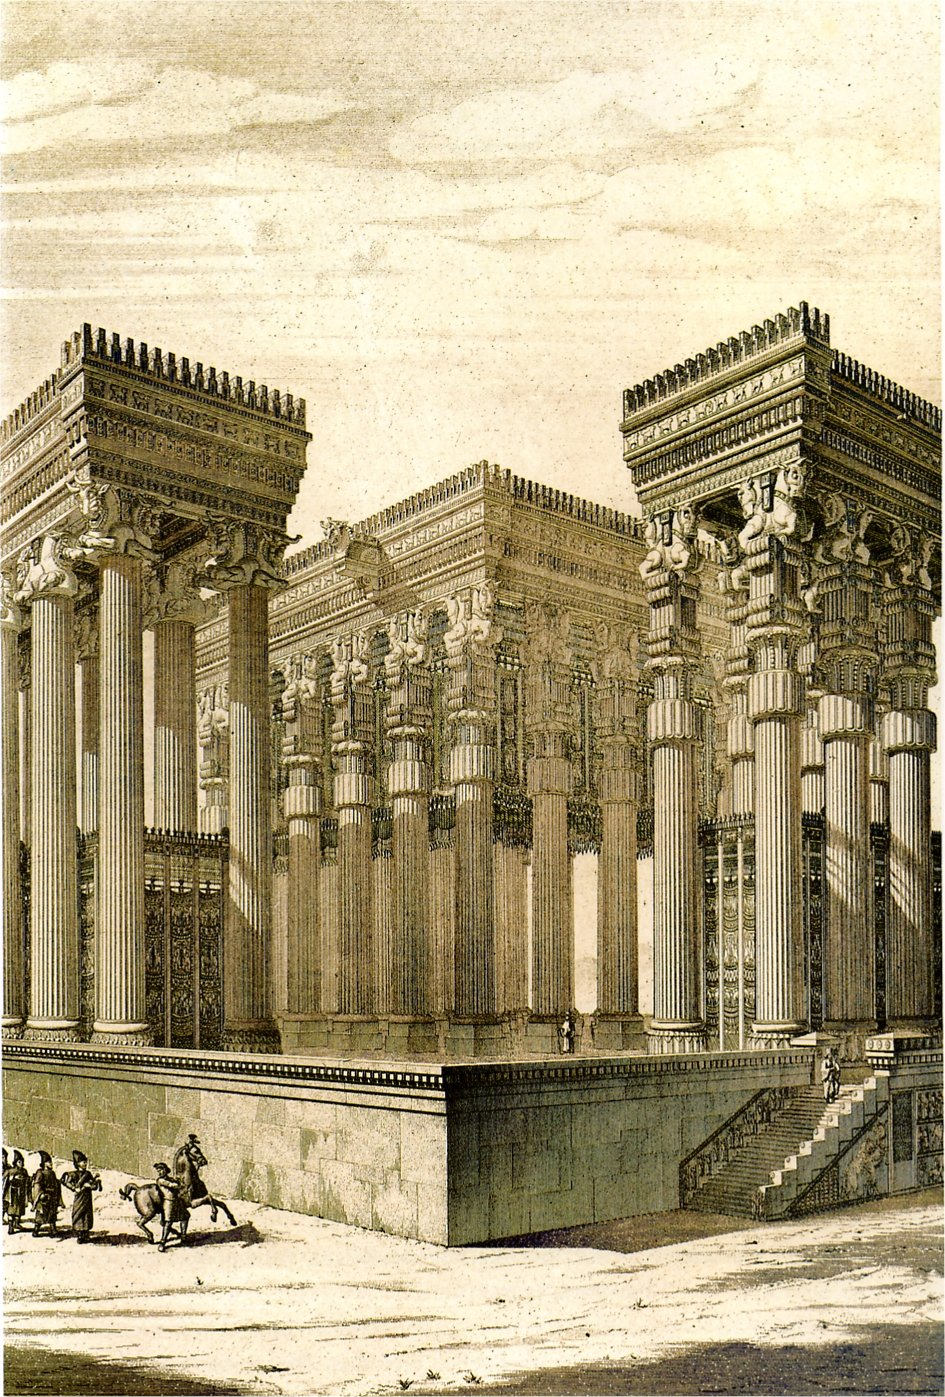 http://upload.wikimedia.org/wikipedia/commons/4/4b/Persepolis_Reconstruction_Apadana_Chipiez.jpg